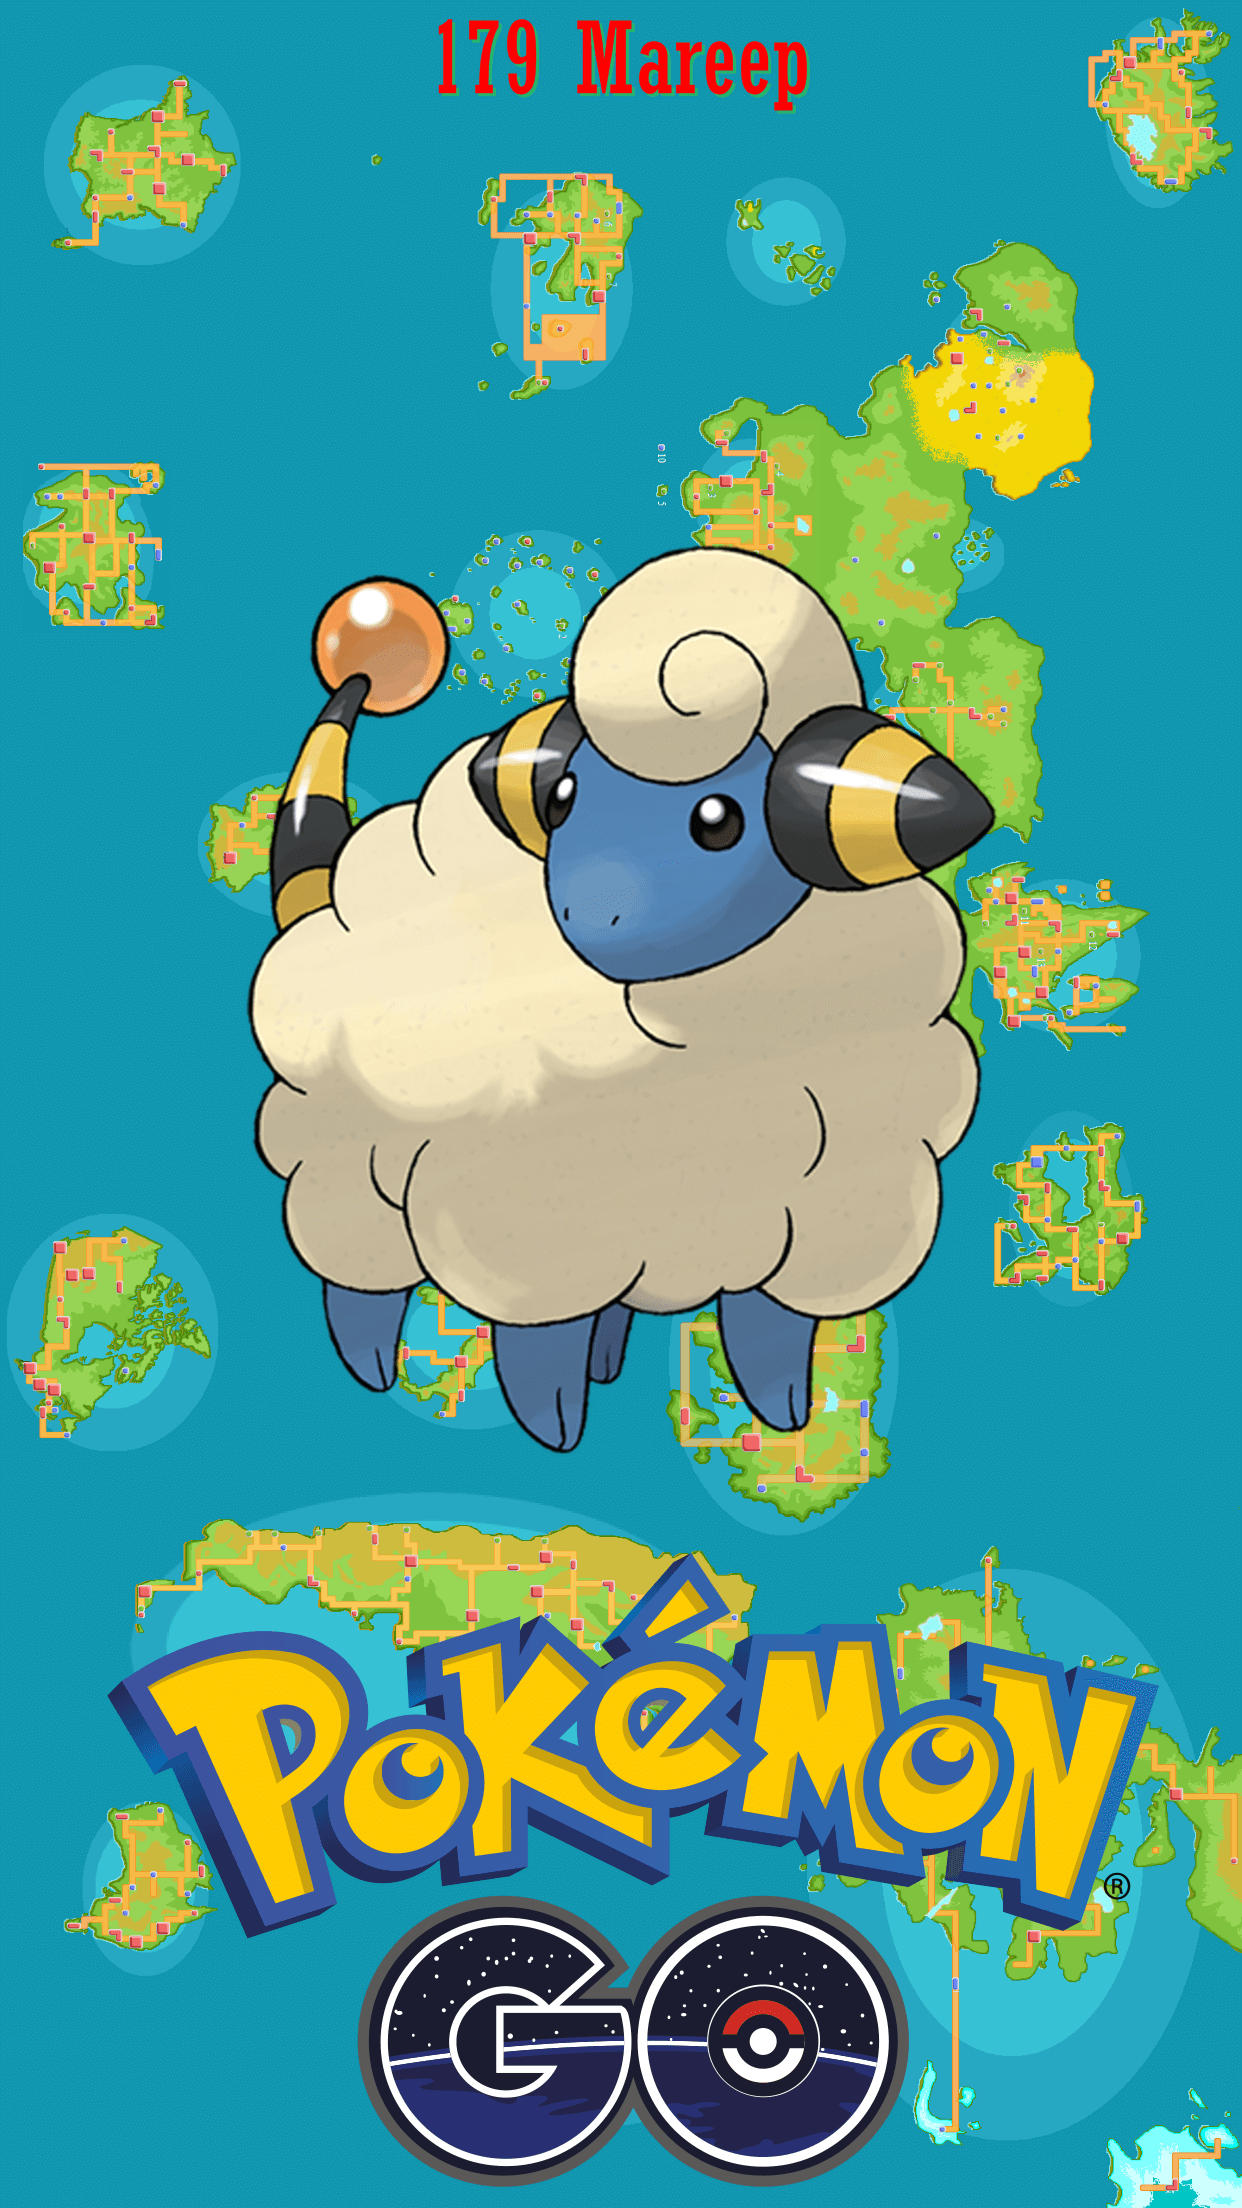 179 Street Map Mareep | Wallpaper